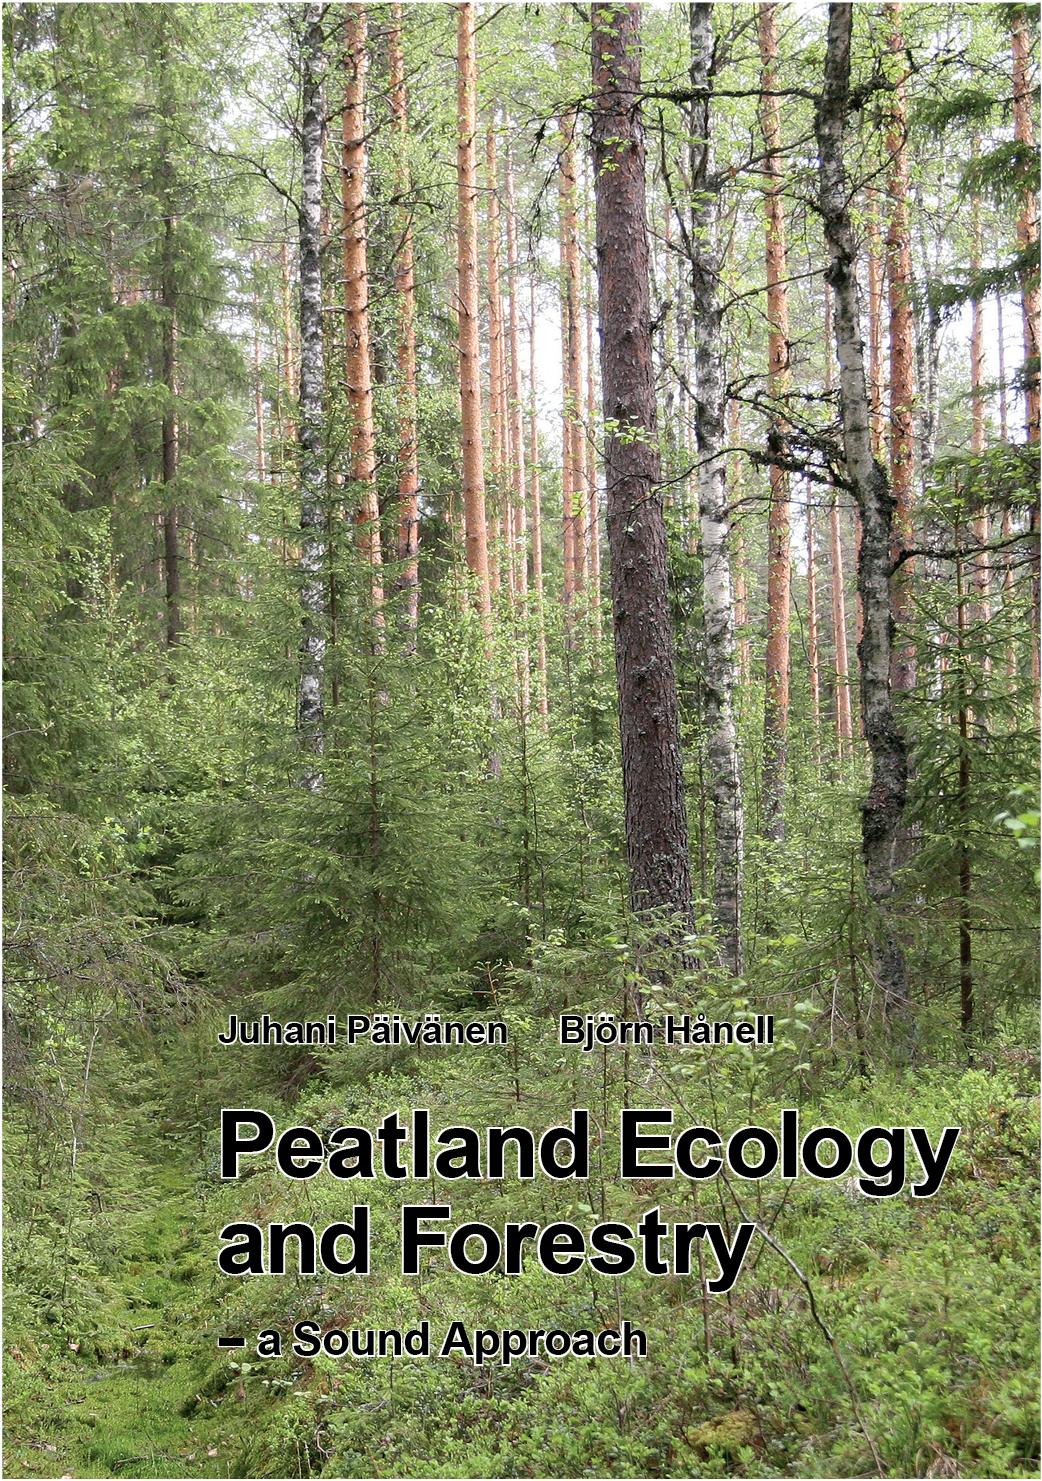 Published thesis on ecology